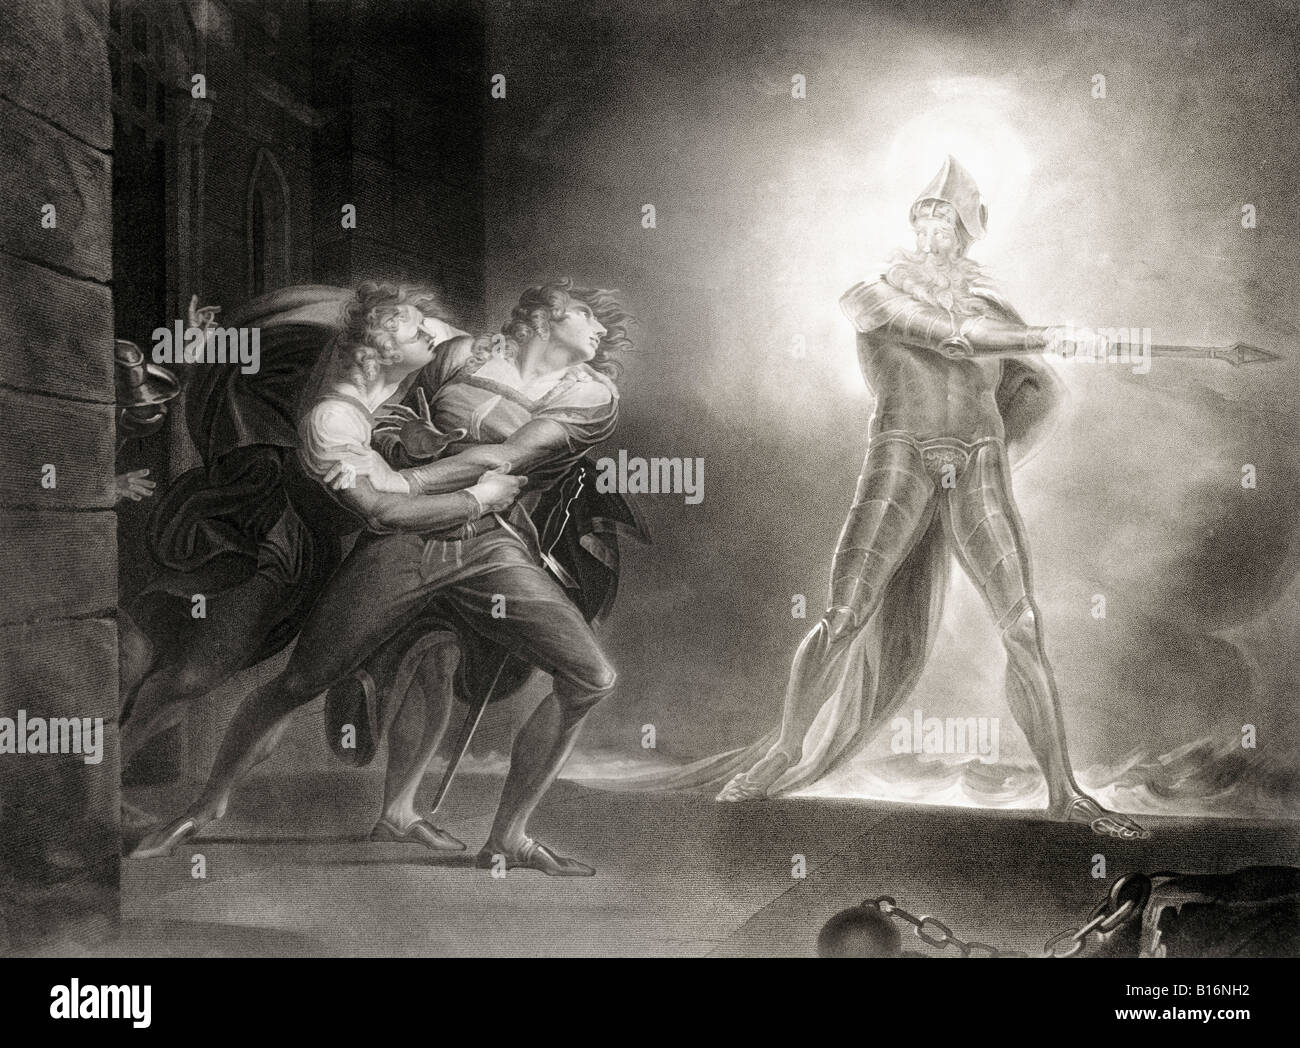 Act 1 scene 4 from Hamlet by William Shakespeare 1564 to 1616 English poet and dramatist - Stock Image